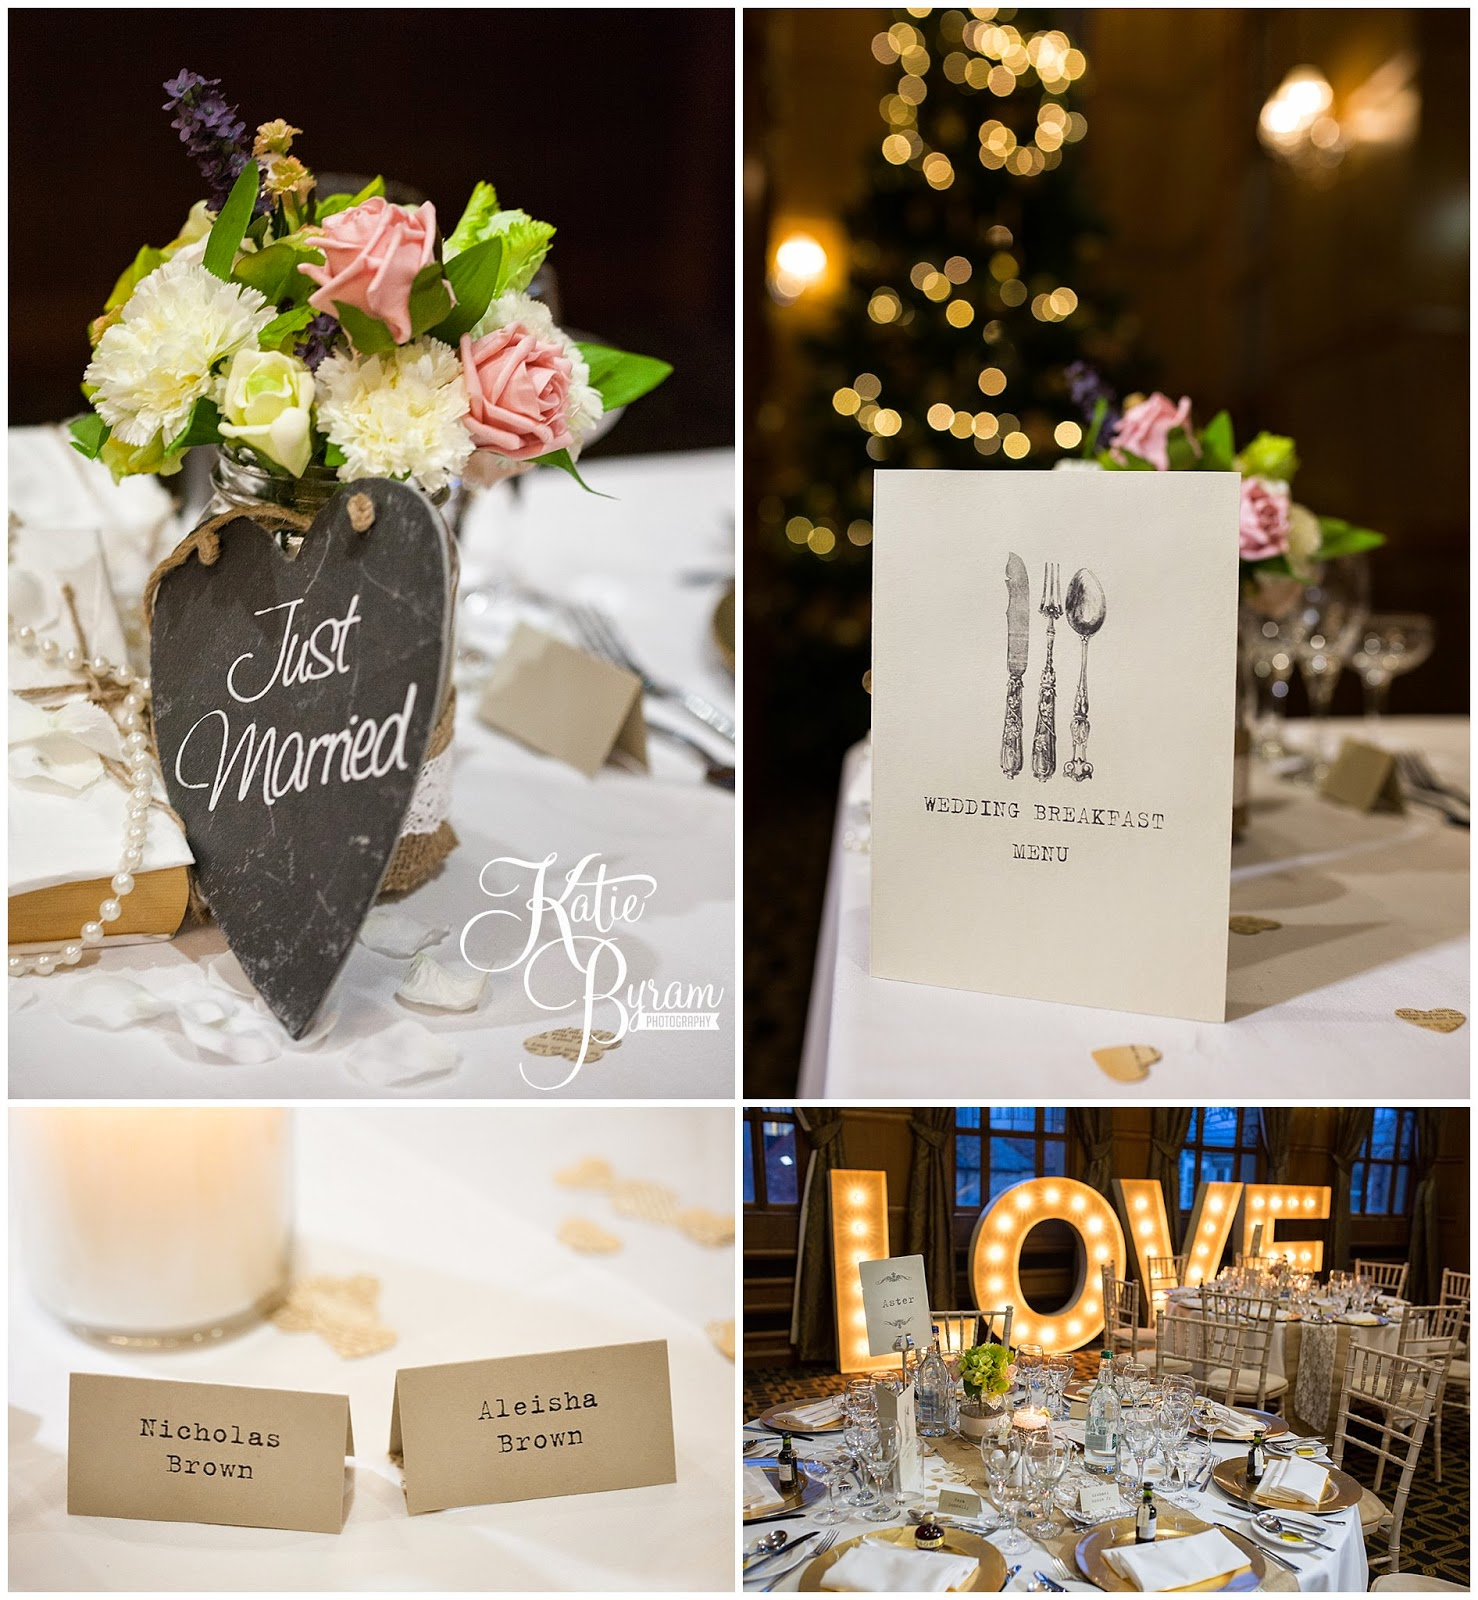 coco luminaire, christmas wedding, the vermont hotel, wedding centrepieces, newcastle city centre wedding, the vermont hotel,vermont weddings, newcastle wedding venue, katie byram photography, hotel wedding newcastle, quayside, nighttime wedding photographs